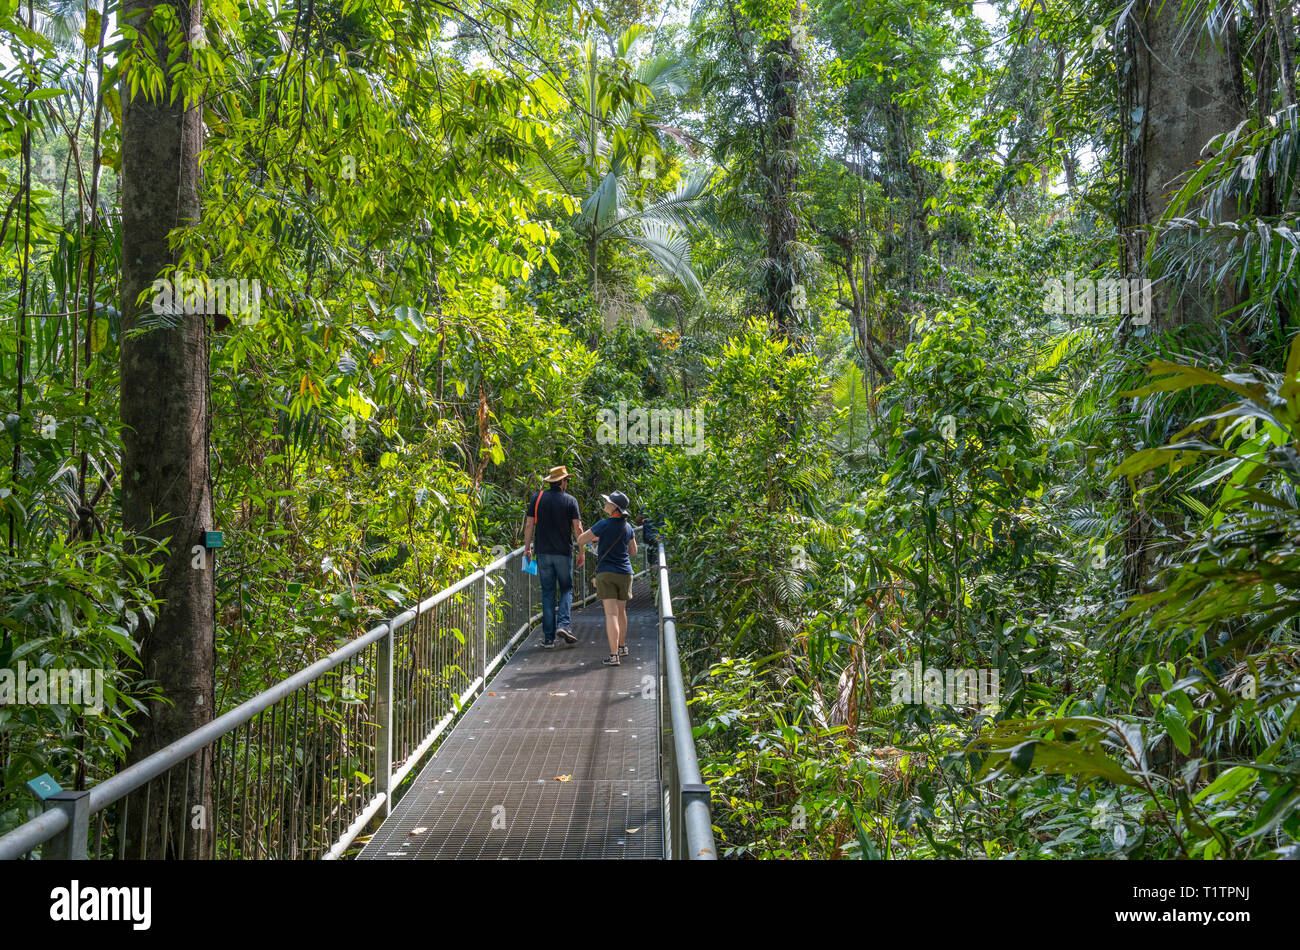 Daintree, Queensland. Visitors on the boardwalk in the Discovery Centre, Daintree Rainforest, Daintree National Park, Queensland, Australia Stock Photo